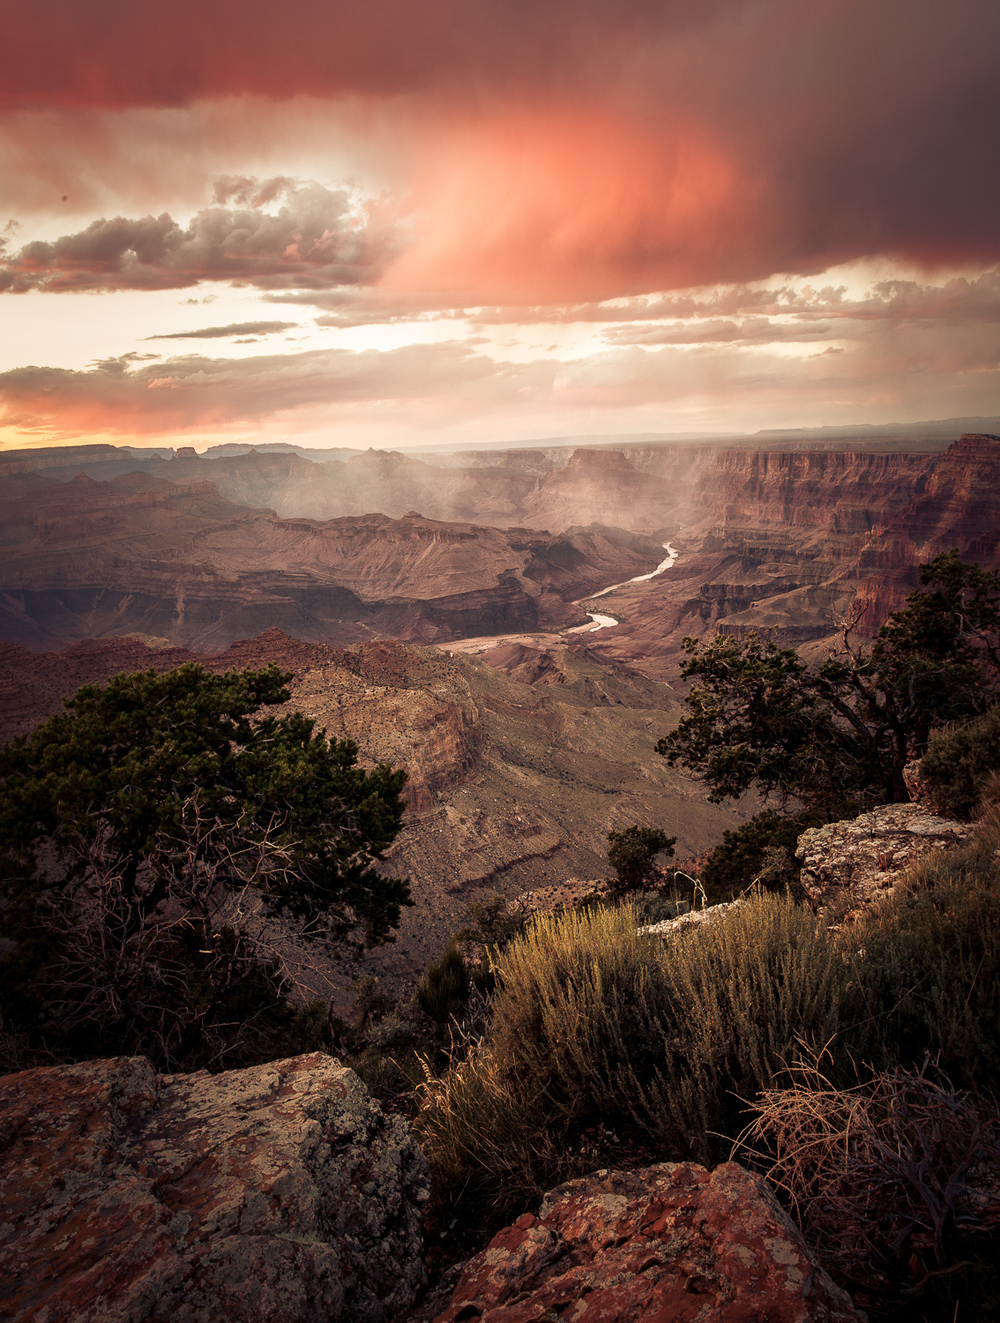 grant-longenbaugh-grand-canyon-13.jpg